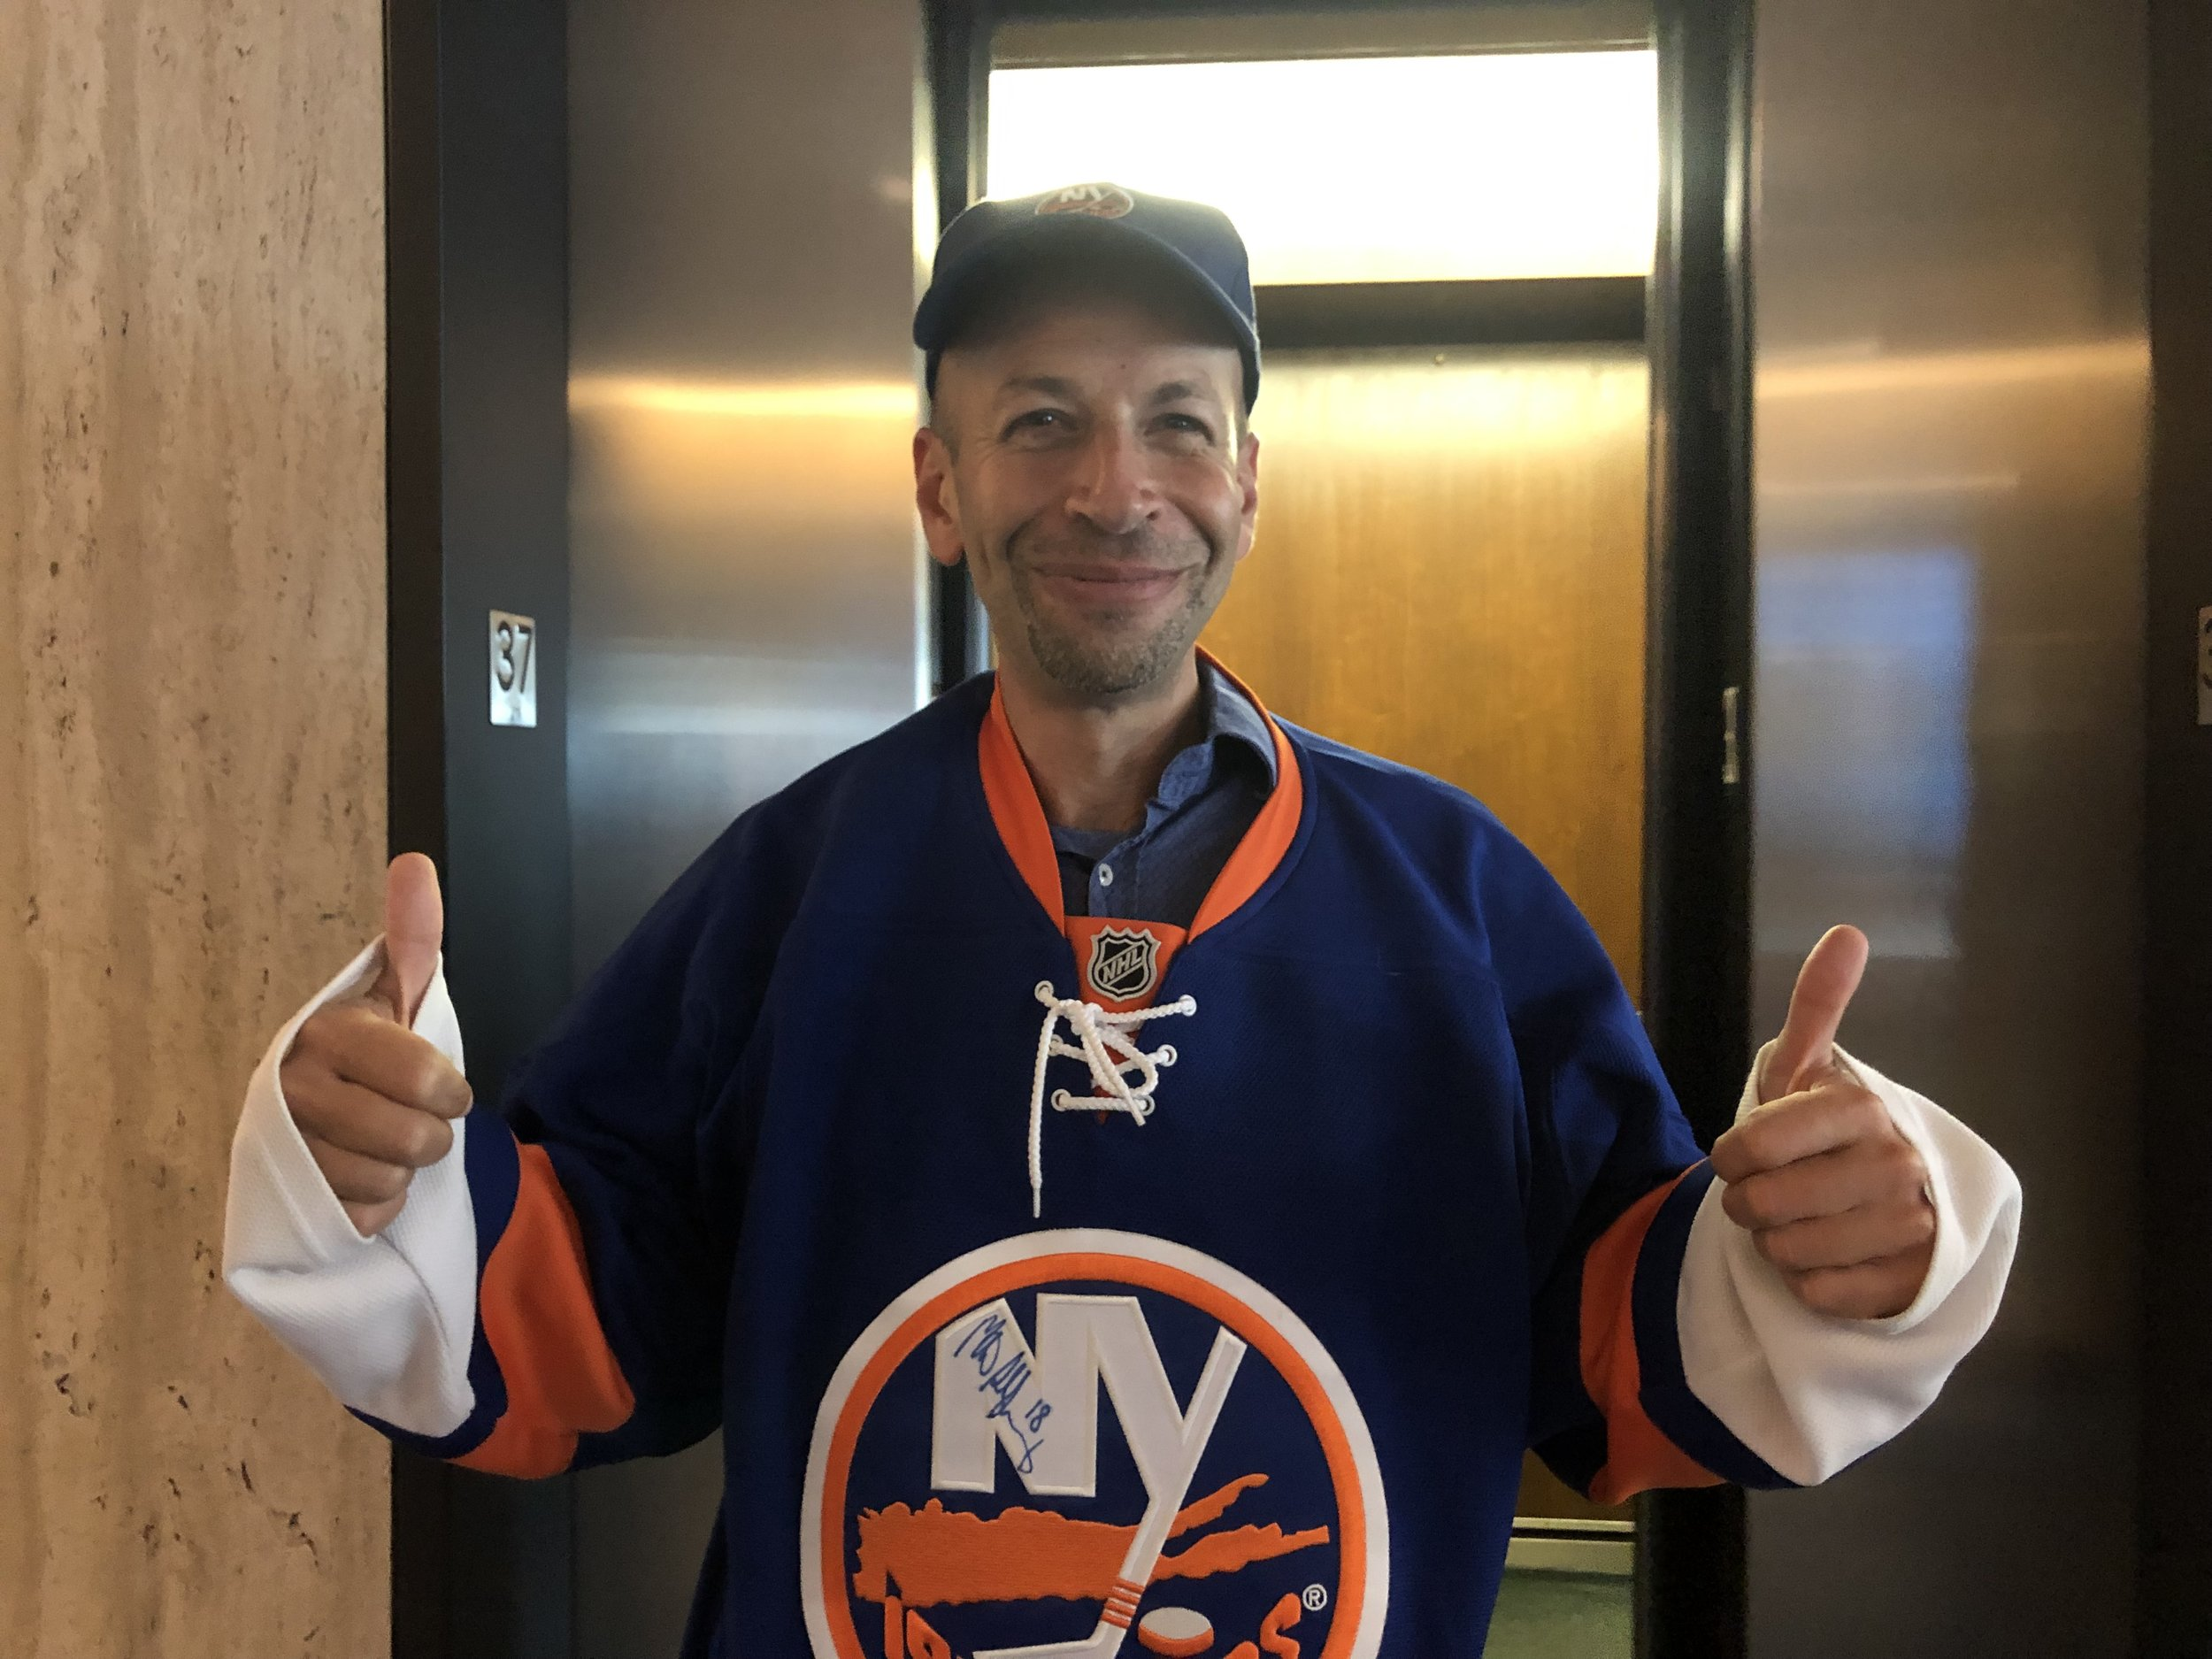 Islanders fan Sam Schneider said he approves of a project to build a new arena in Elmont, Long Island, just over the Queens border.  Eagle  photo by Naeisha Rose.